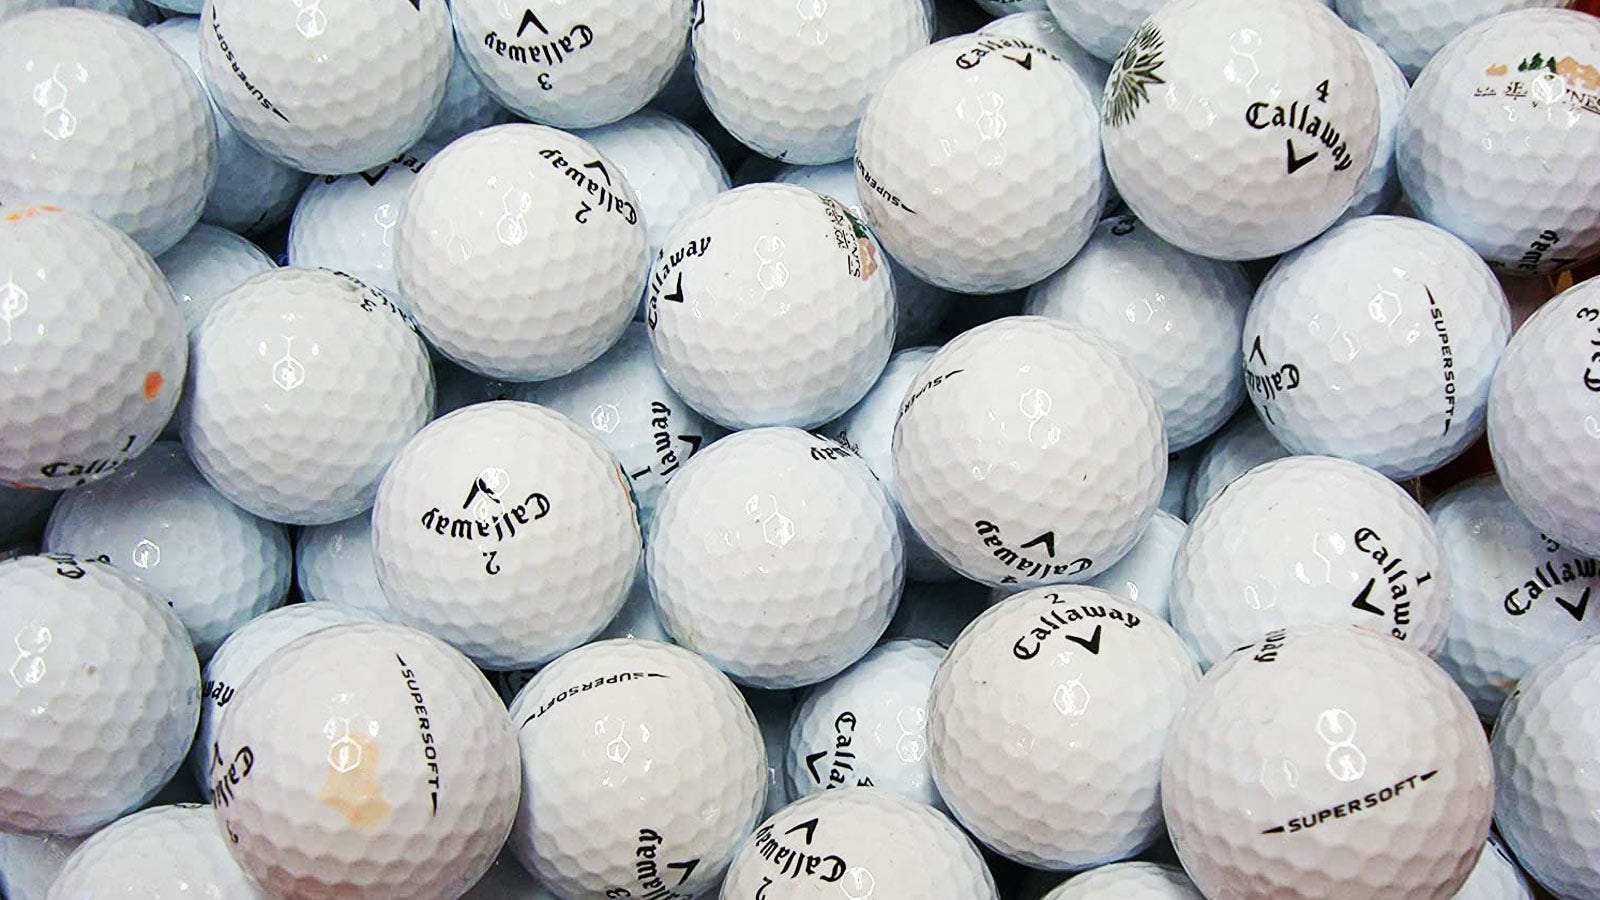 A pile of used Calloway golf balls.